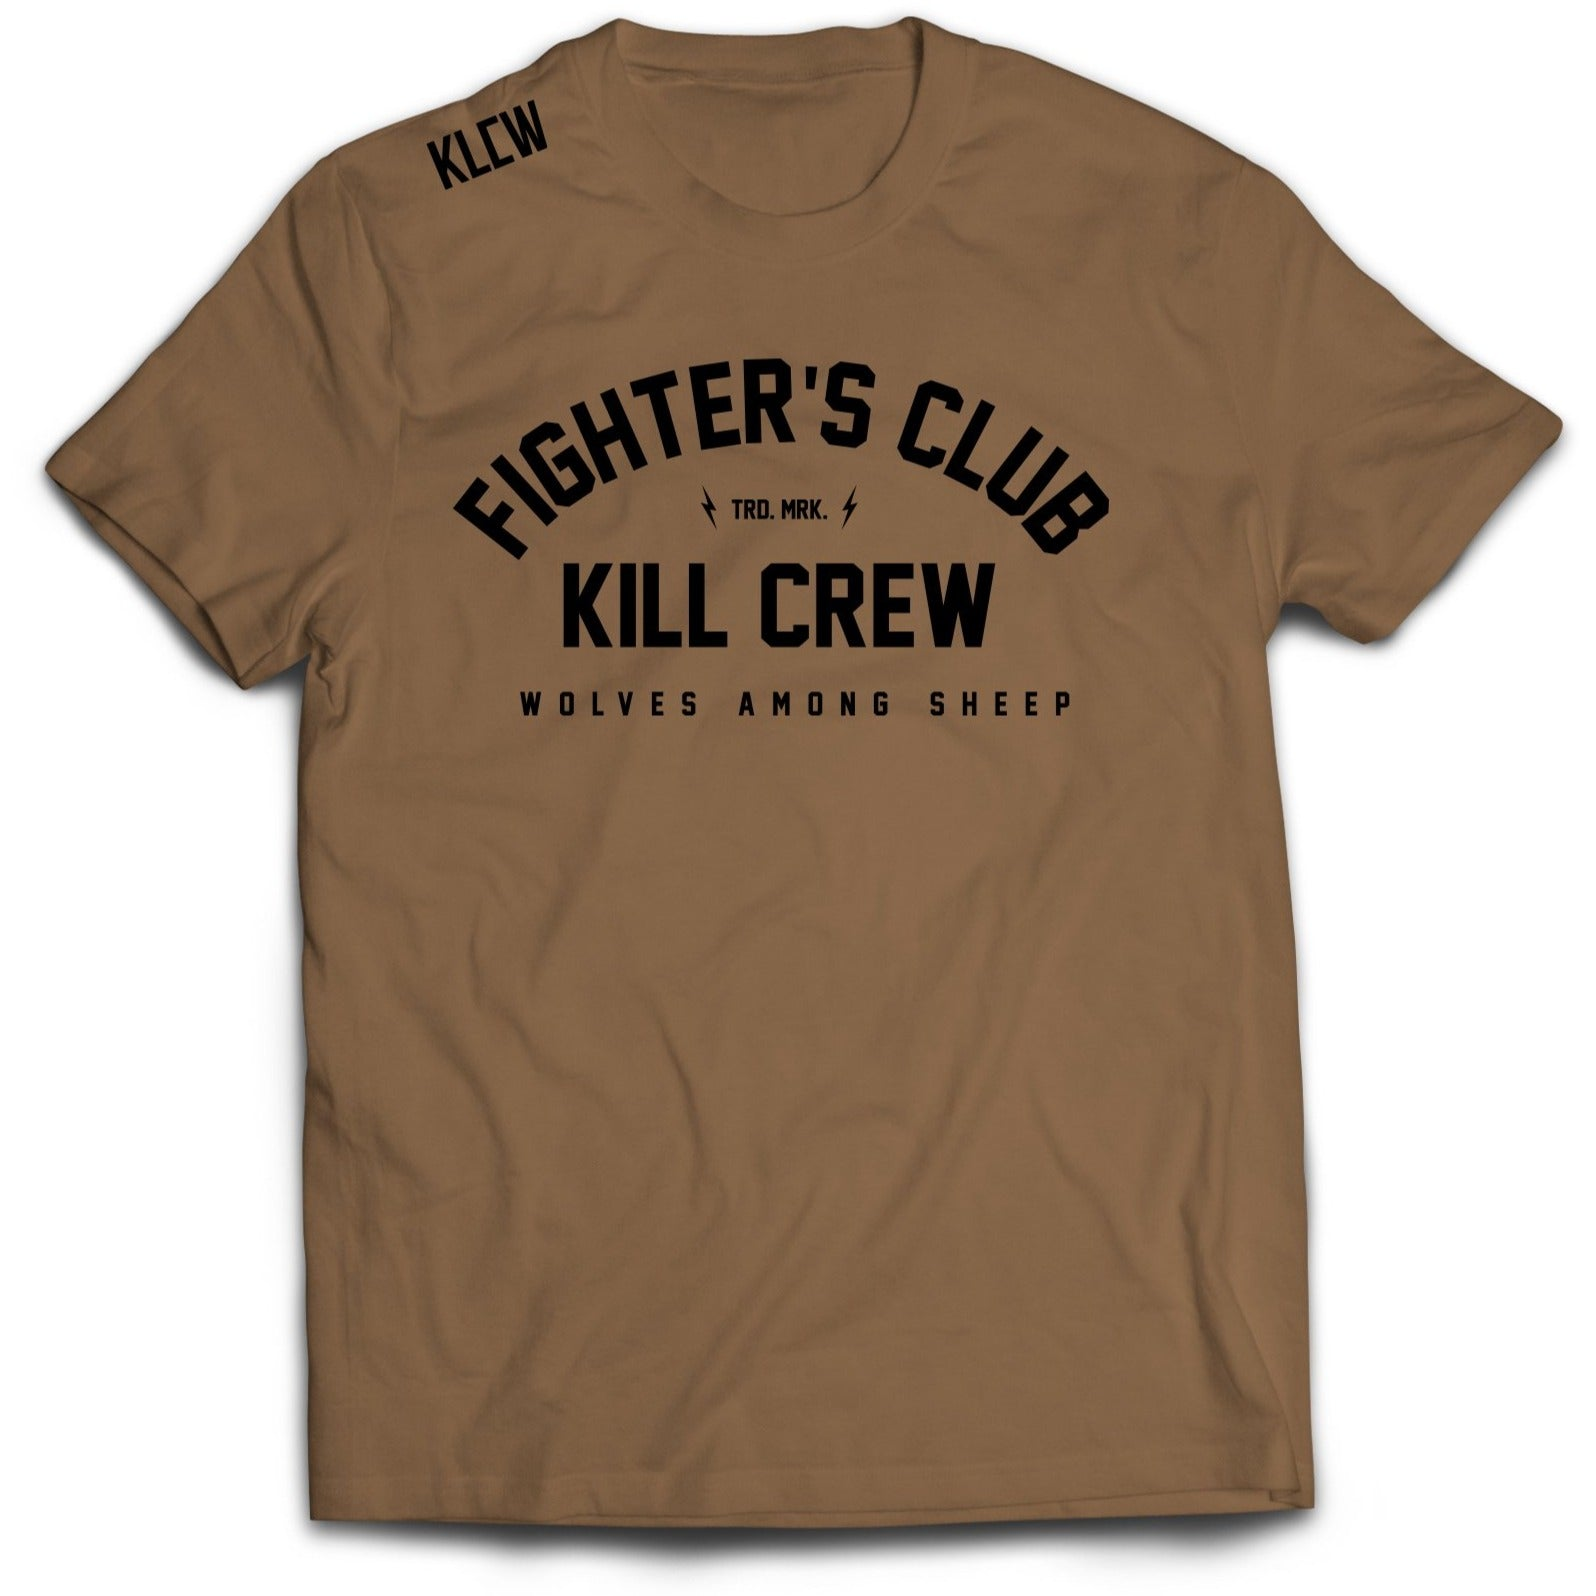 FIGHTER'S CLUB T-SHIRT - SAND